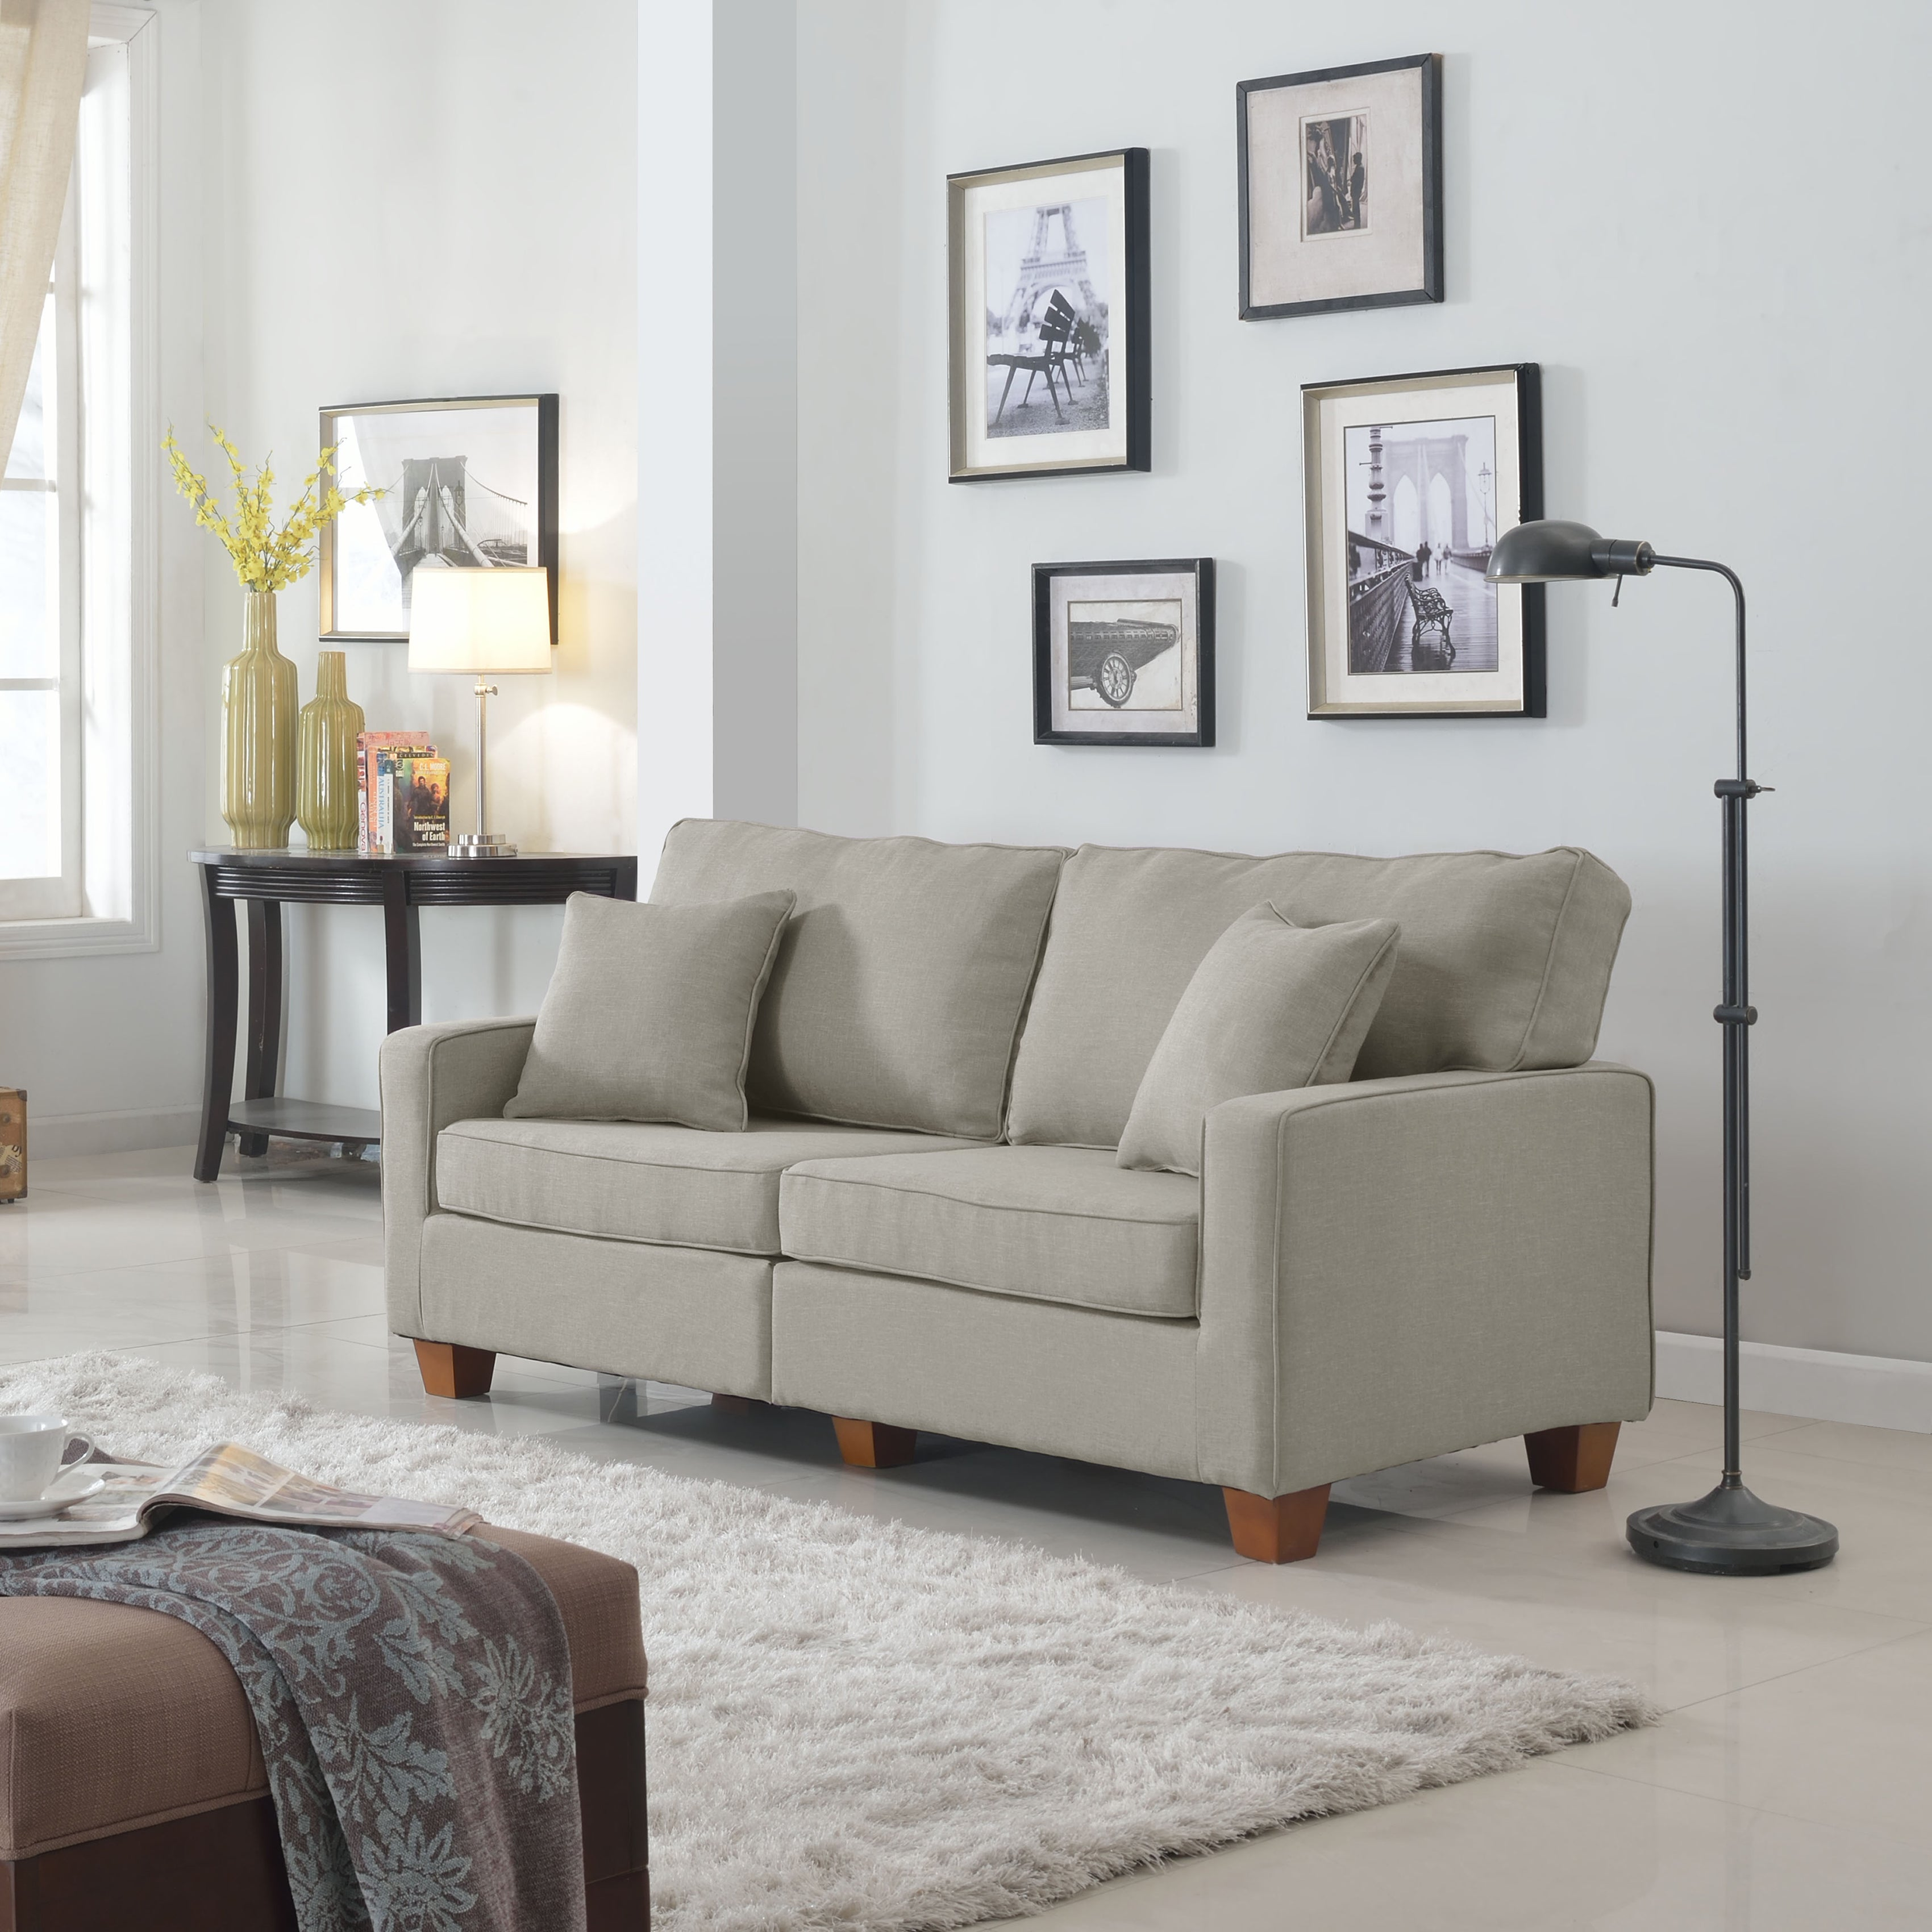 Classic 73 Inch Love Seat Living Room Linen Fabric Sofa In Colors Beige Brown Light Grey And Dark Grey